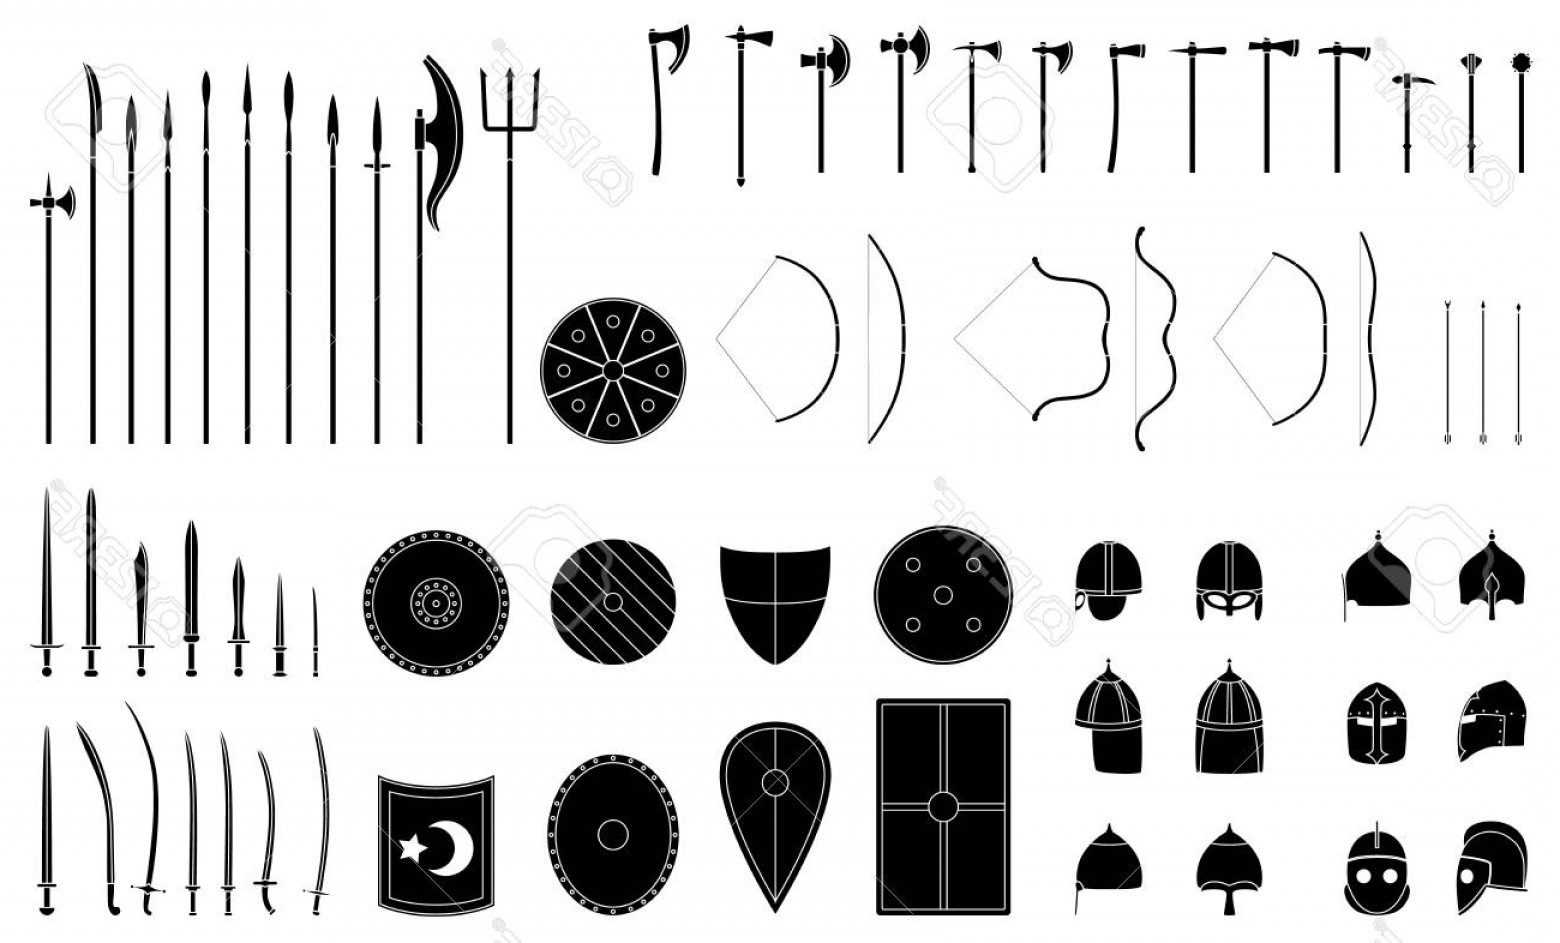 Pike Spear Vector: Photostock Vector Medieval Weapons And Armors Set Medieval Warrior Equipment Sword Sabre Dagger Axe Male Spear Pike Bo